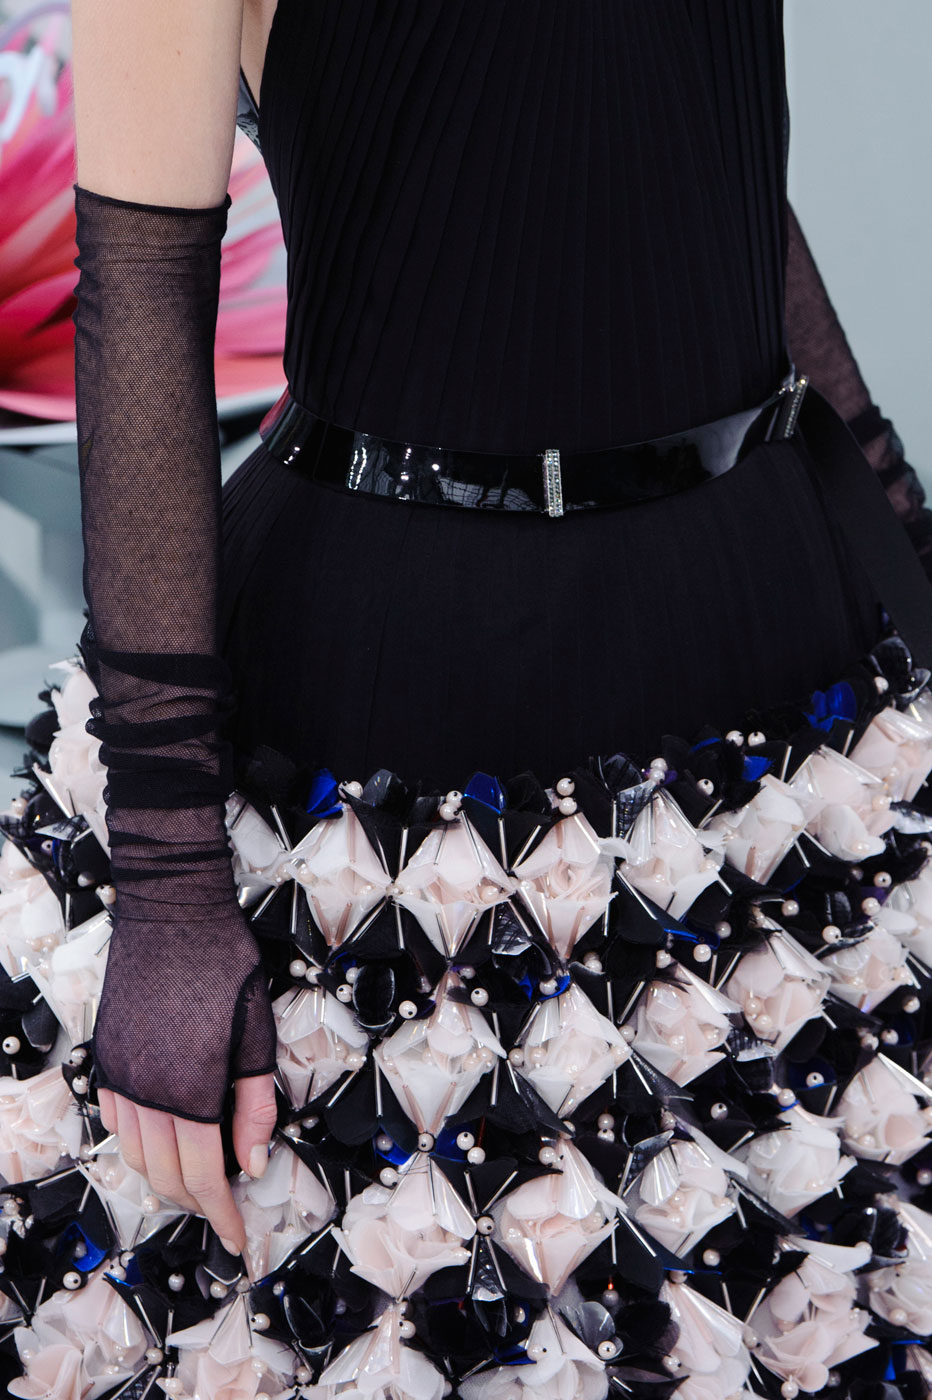 Chanel-fashion-runway-show-close-ups-haute-couture-paris-spring-summer-2015-the-impression-130